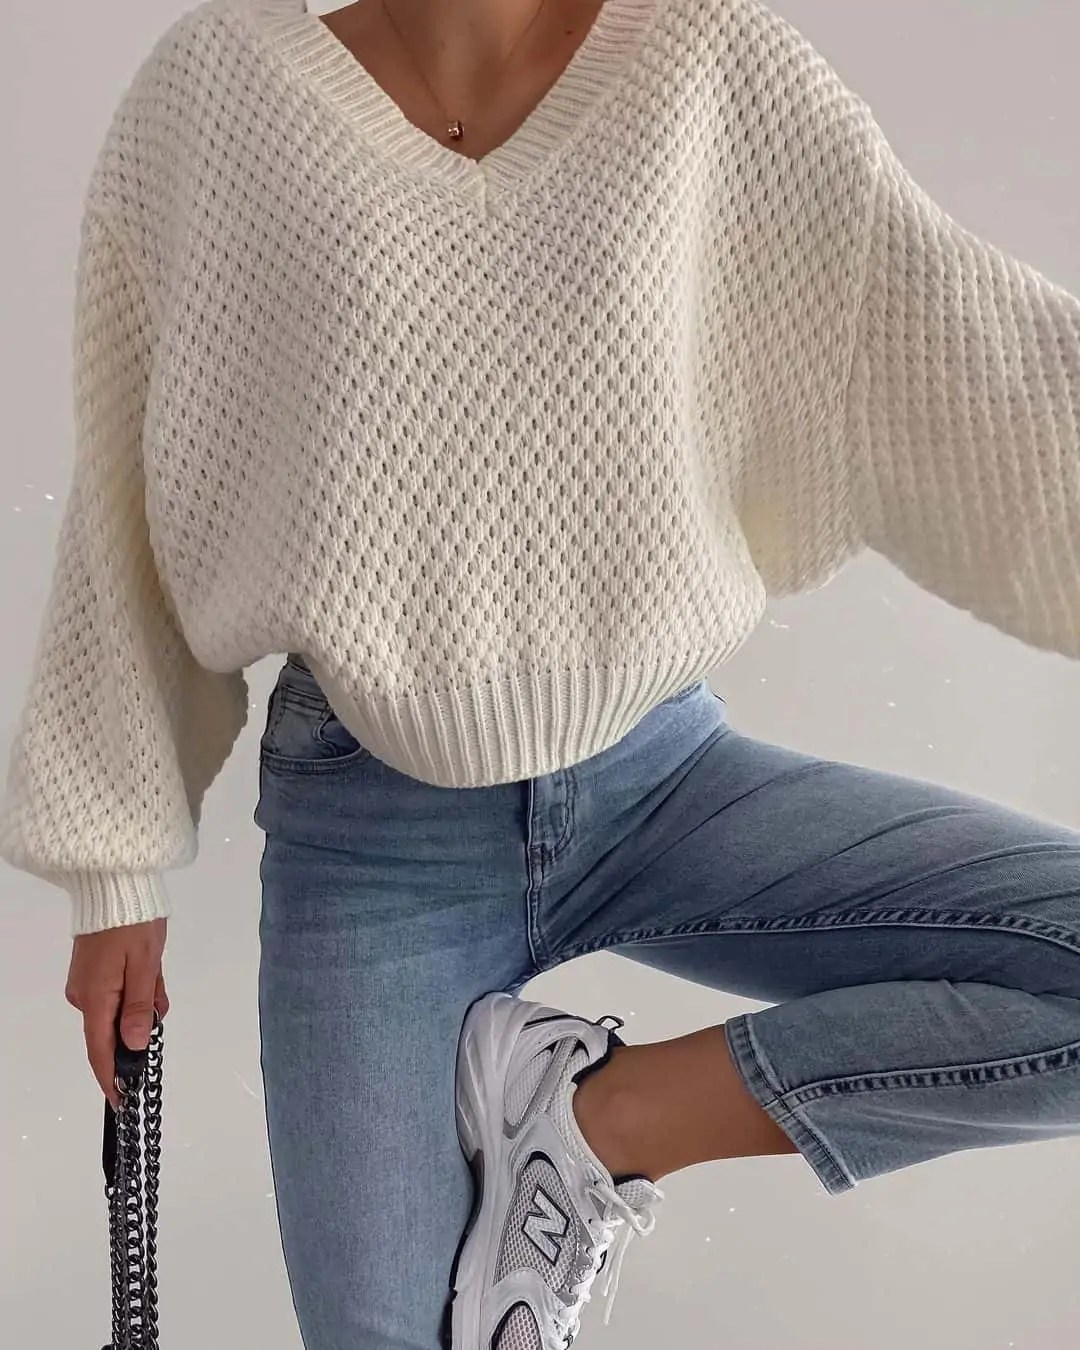 100+ Outfits to Inspire your next shopping haul 207